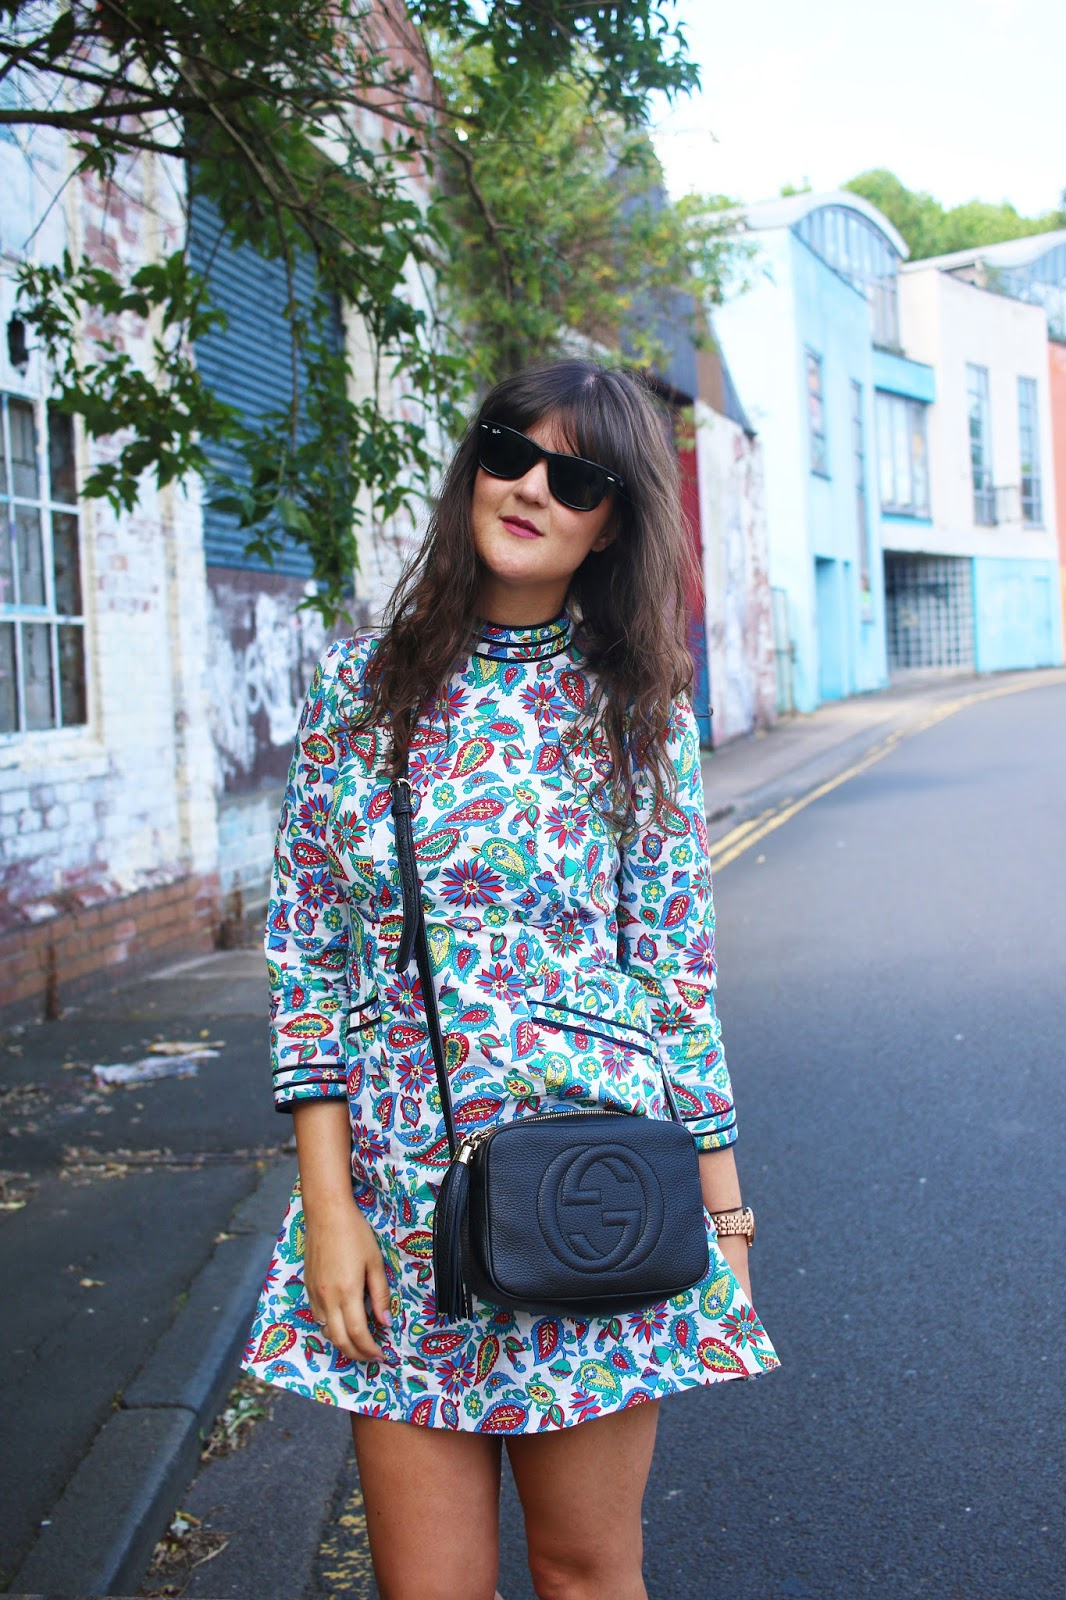 Fashion: Paisley prints and investment purchases